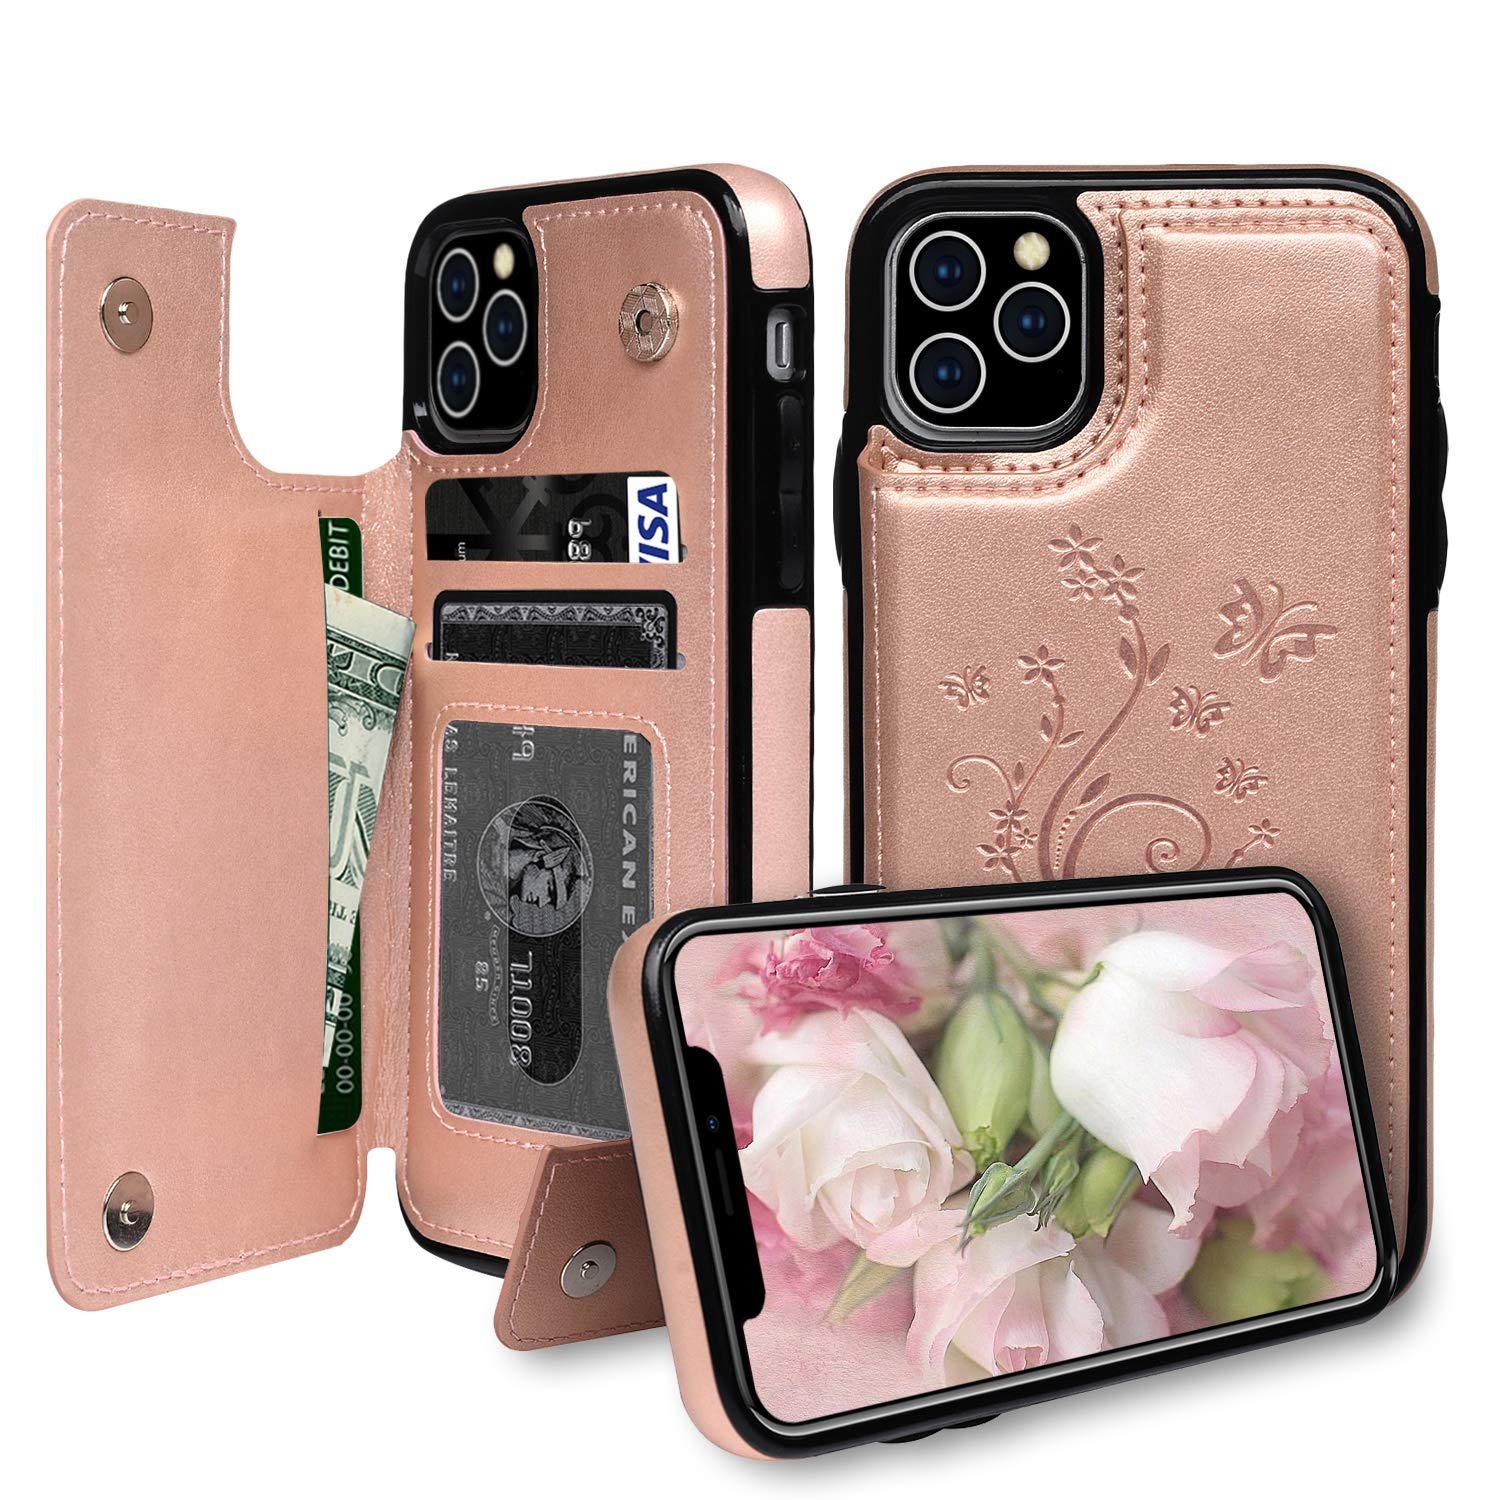 iPhone 11 Pro Max Case Wallet with Card Slots, Badalink Back Flip Case Magnetic Snap, Luxury Embossed Leather Protective Cover for iPhone 11 Pro Max 2019 6.5inch - Rose Gold